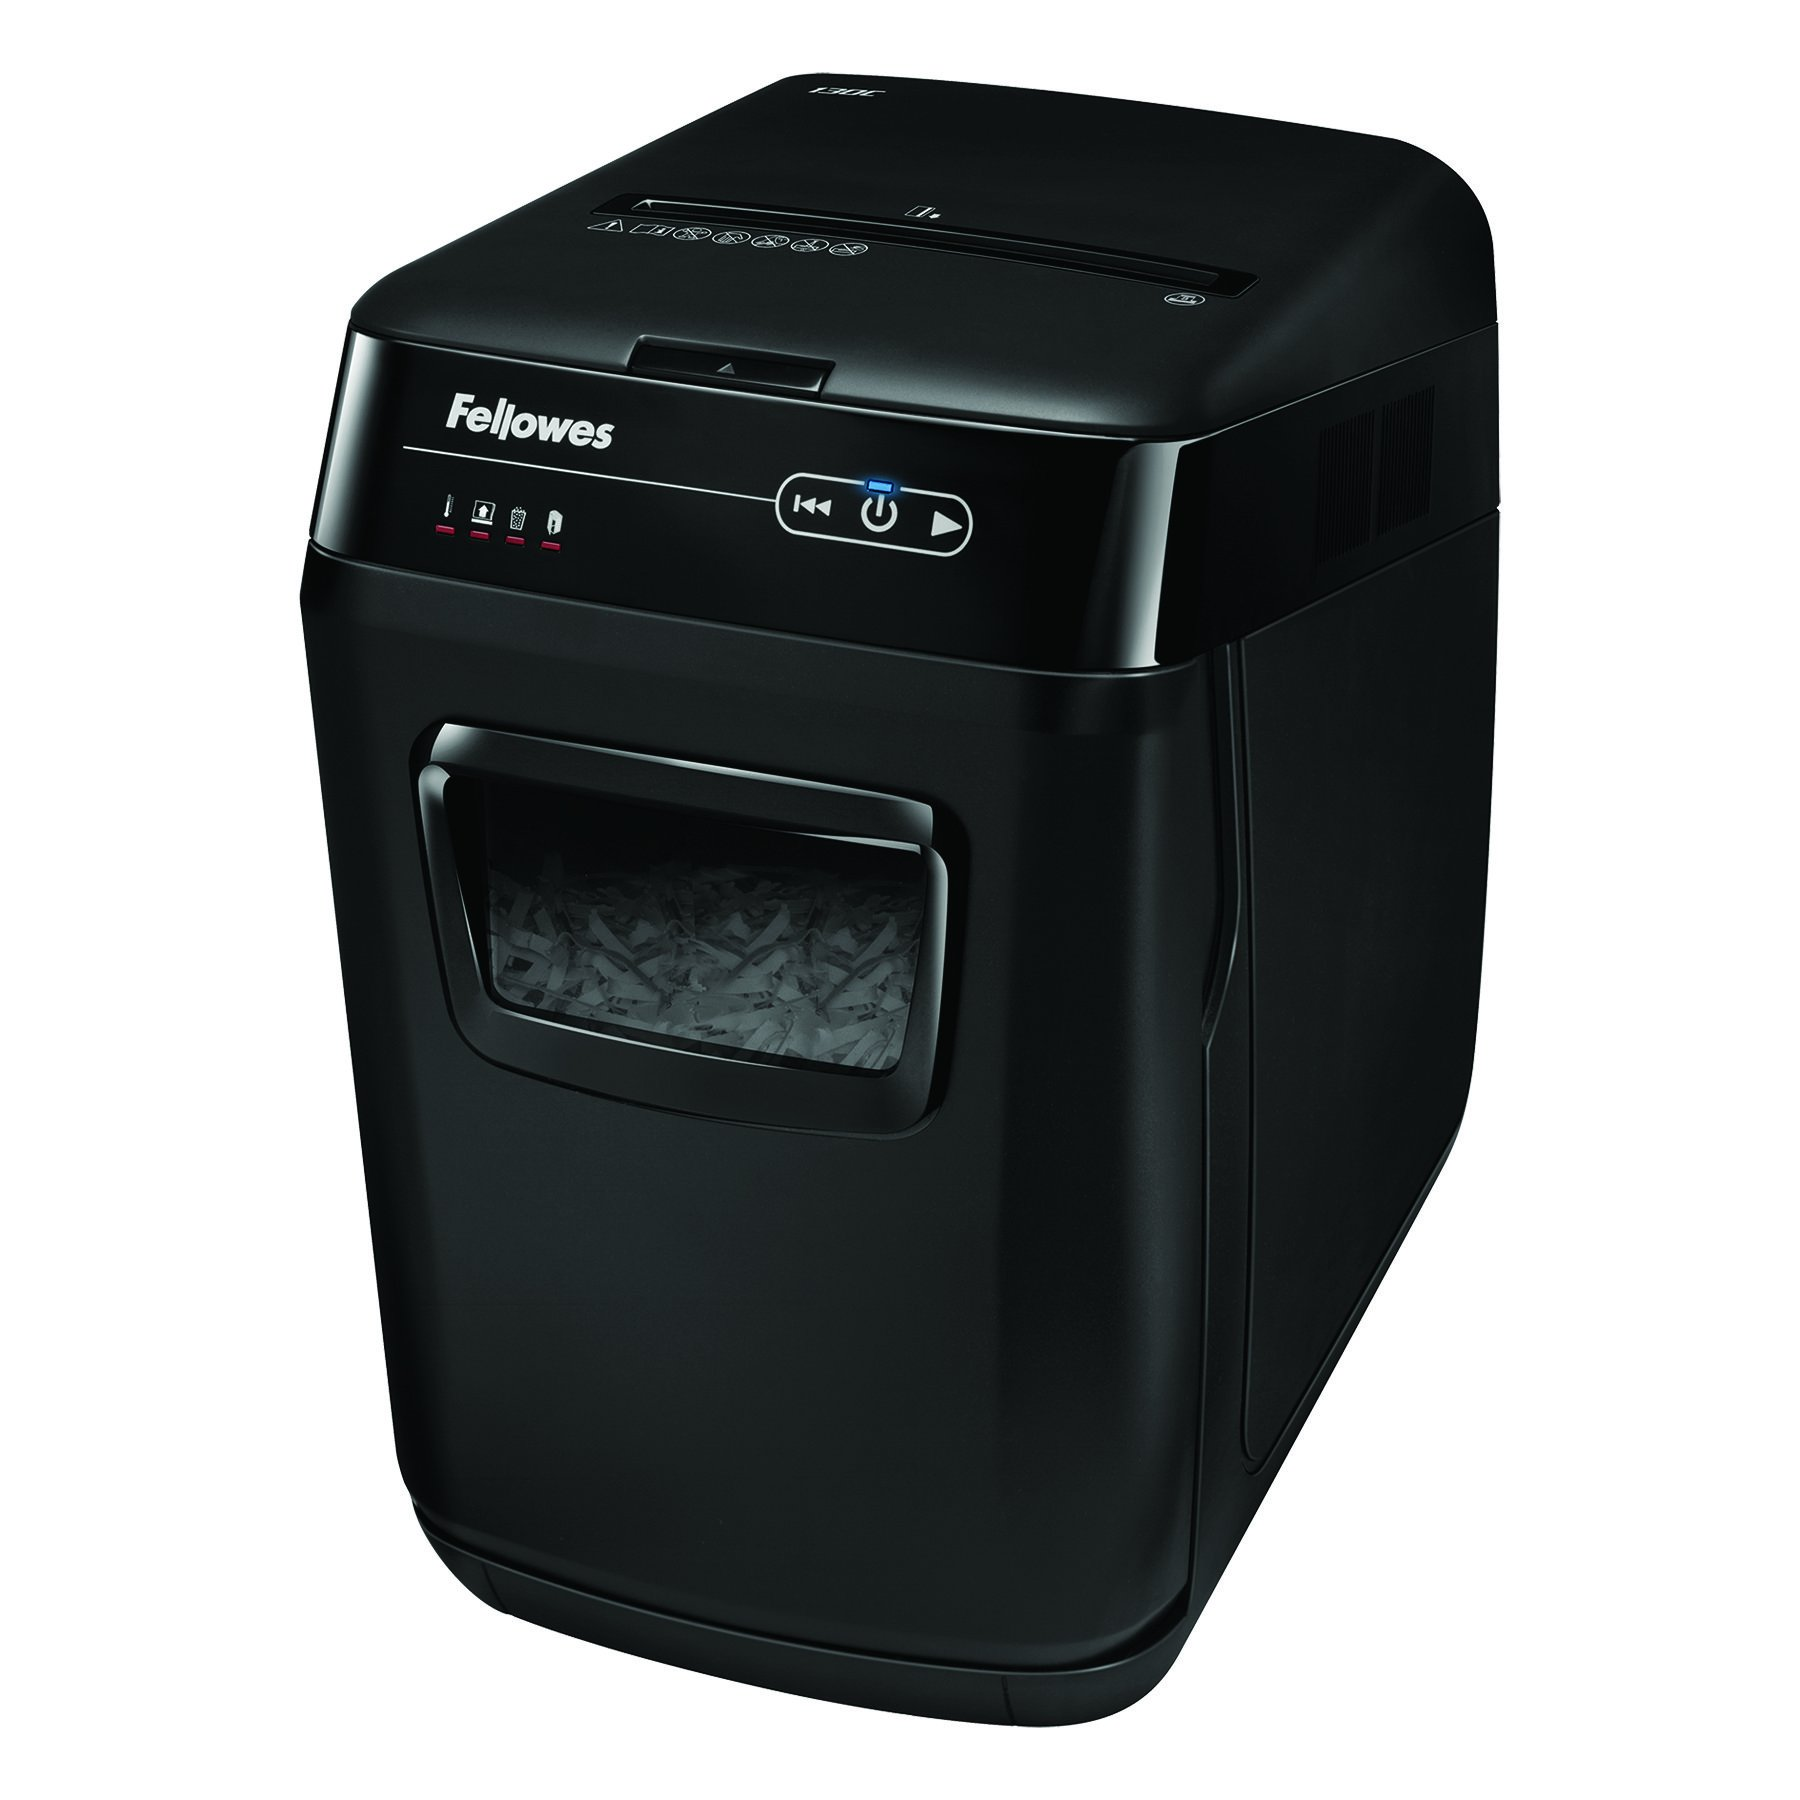 Fellowes AutoMax 130C 130-Sheet Cross-Cut Auto Feed Shredder with Jam Protection for Hands-Free Shredding (4680001) by Fellowes